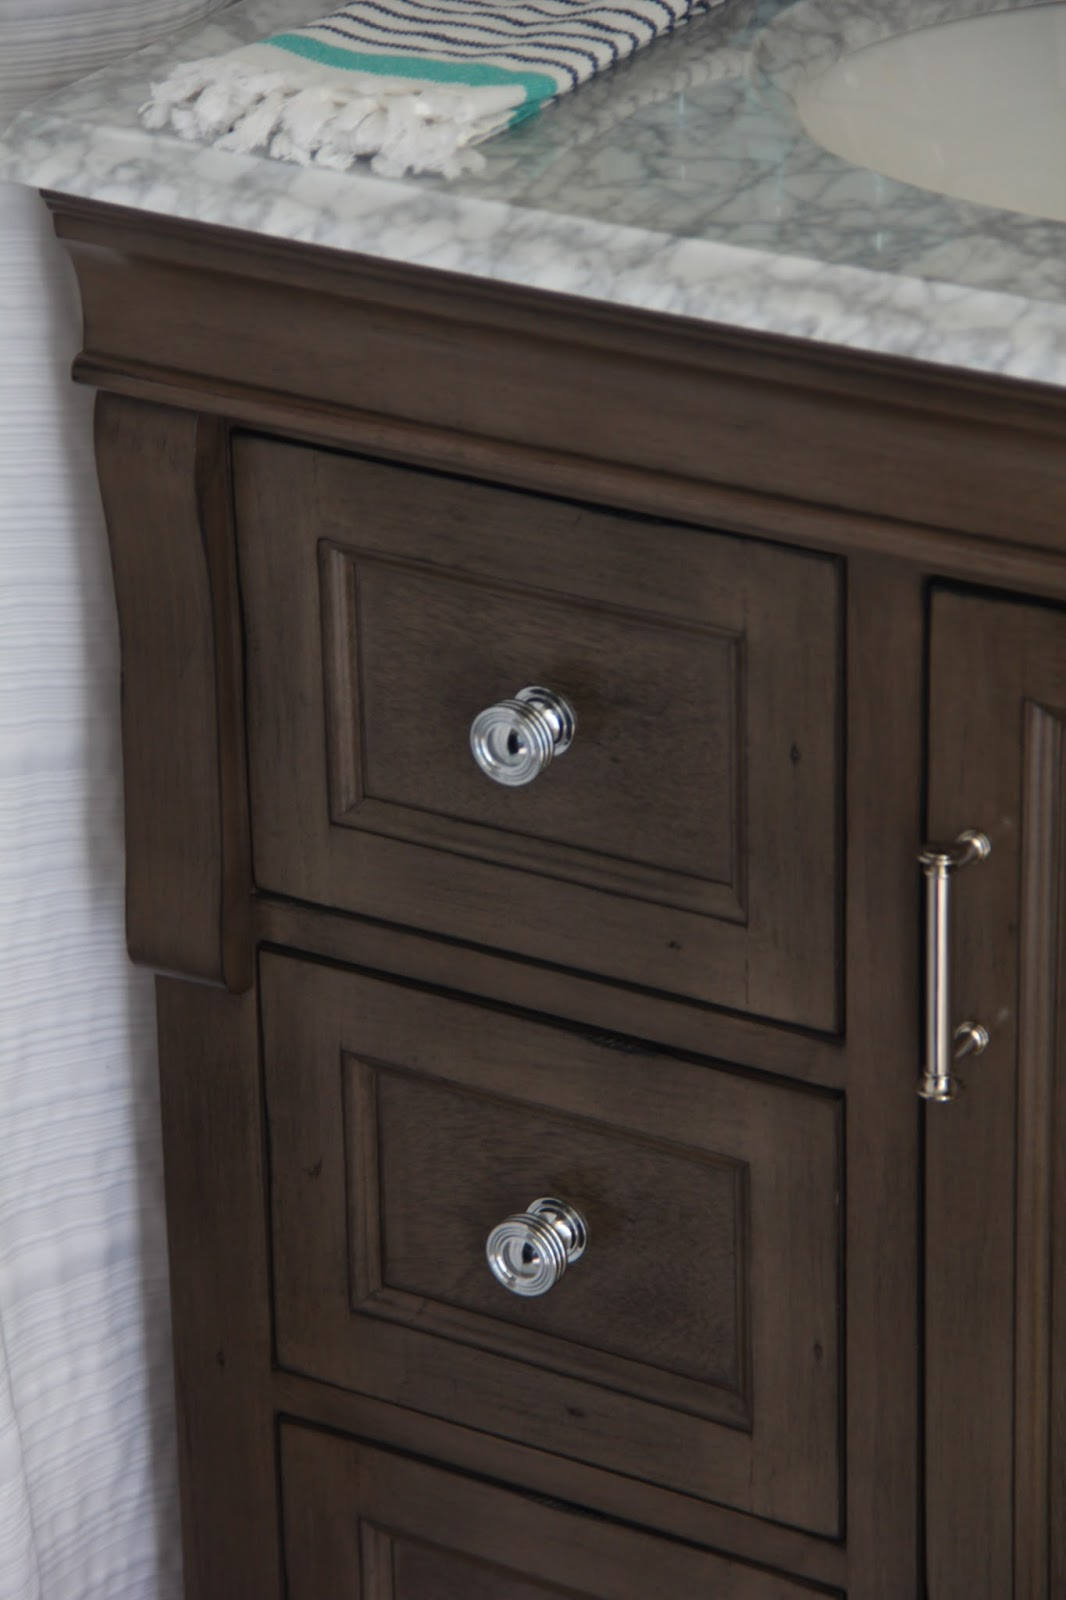 Great I should mention the hardware that came with this vanity was oil rubbed bronze and birdcage style I had the chrome knobs in my stash and I ran out to Lowes